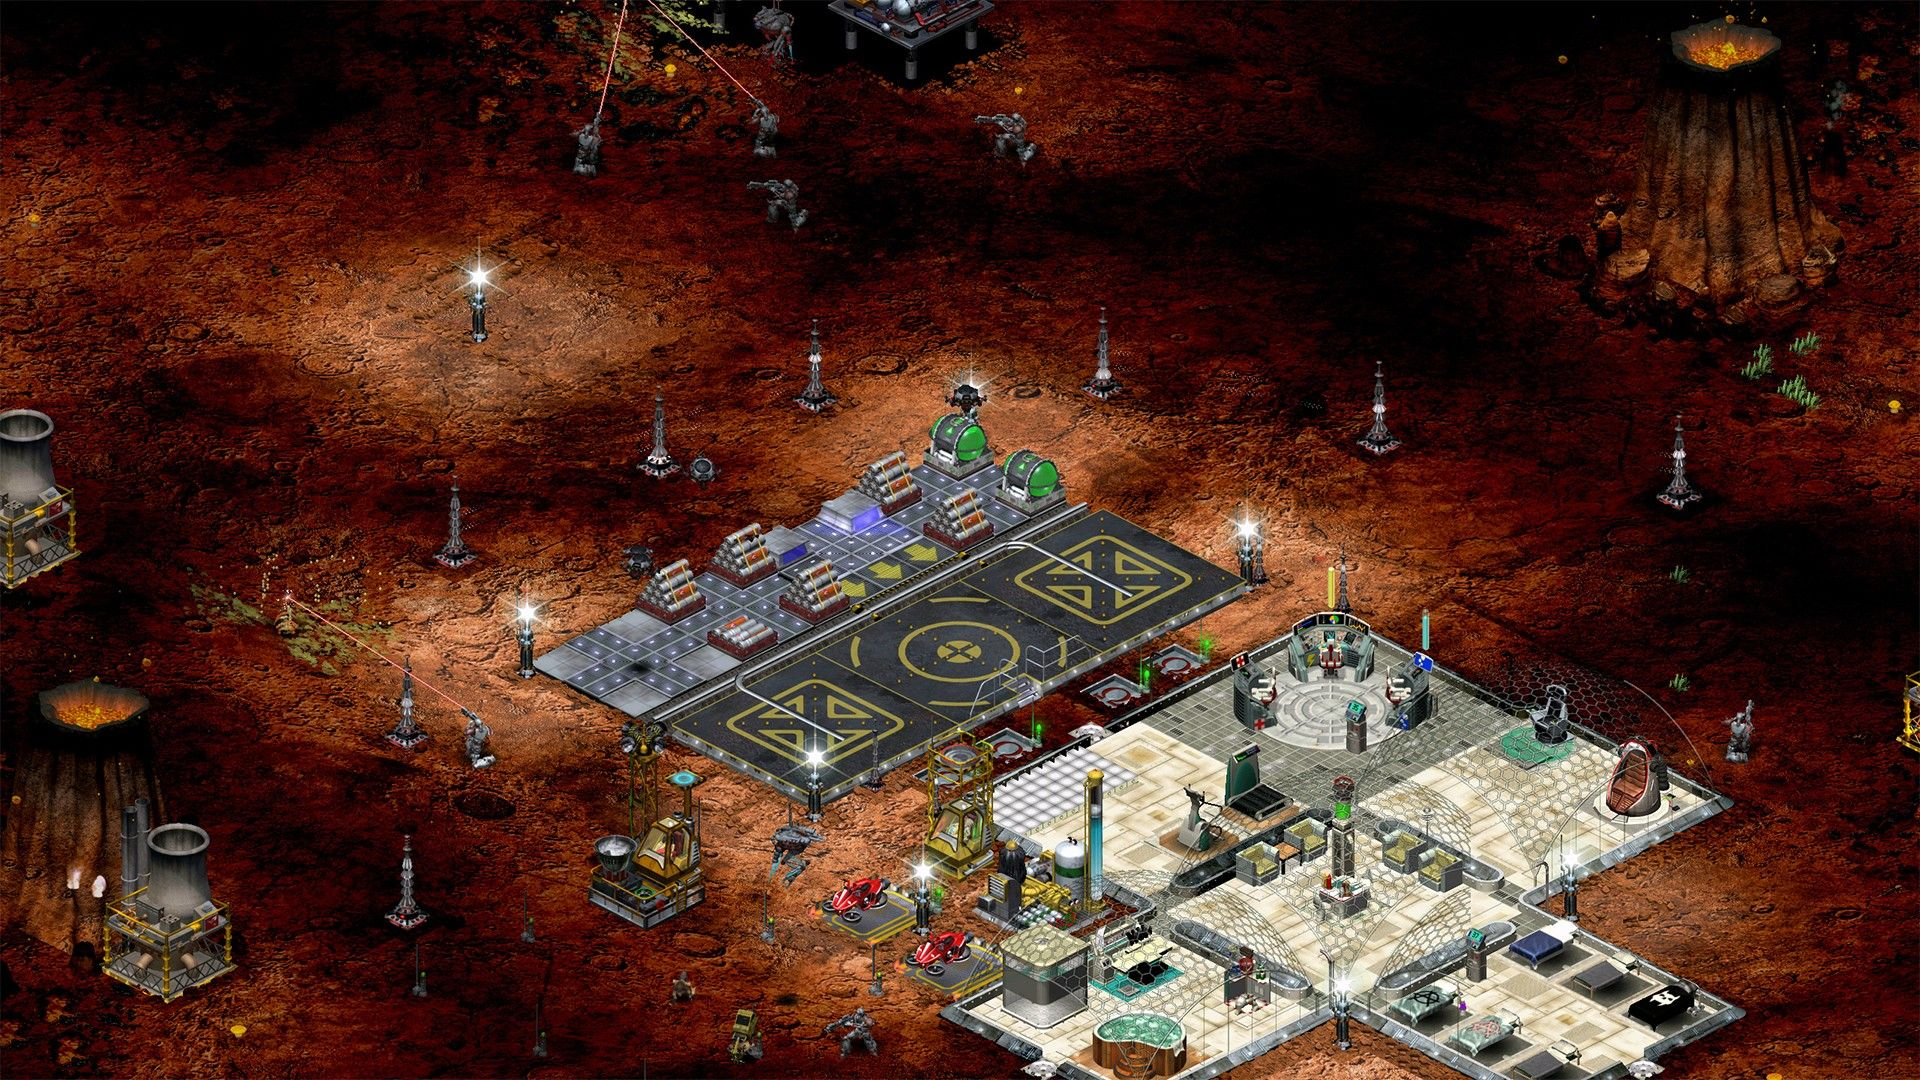 Space Colony isometric game on Steam Space colony